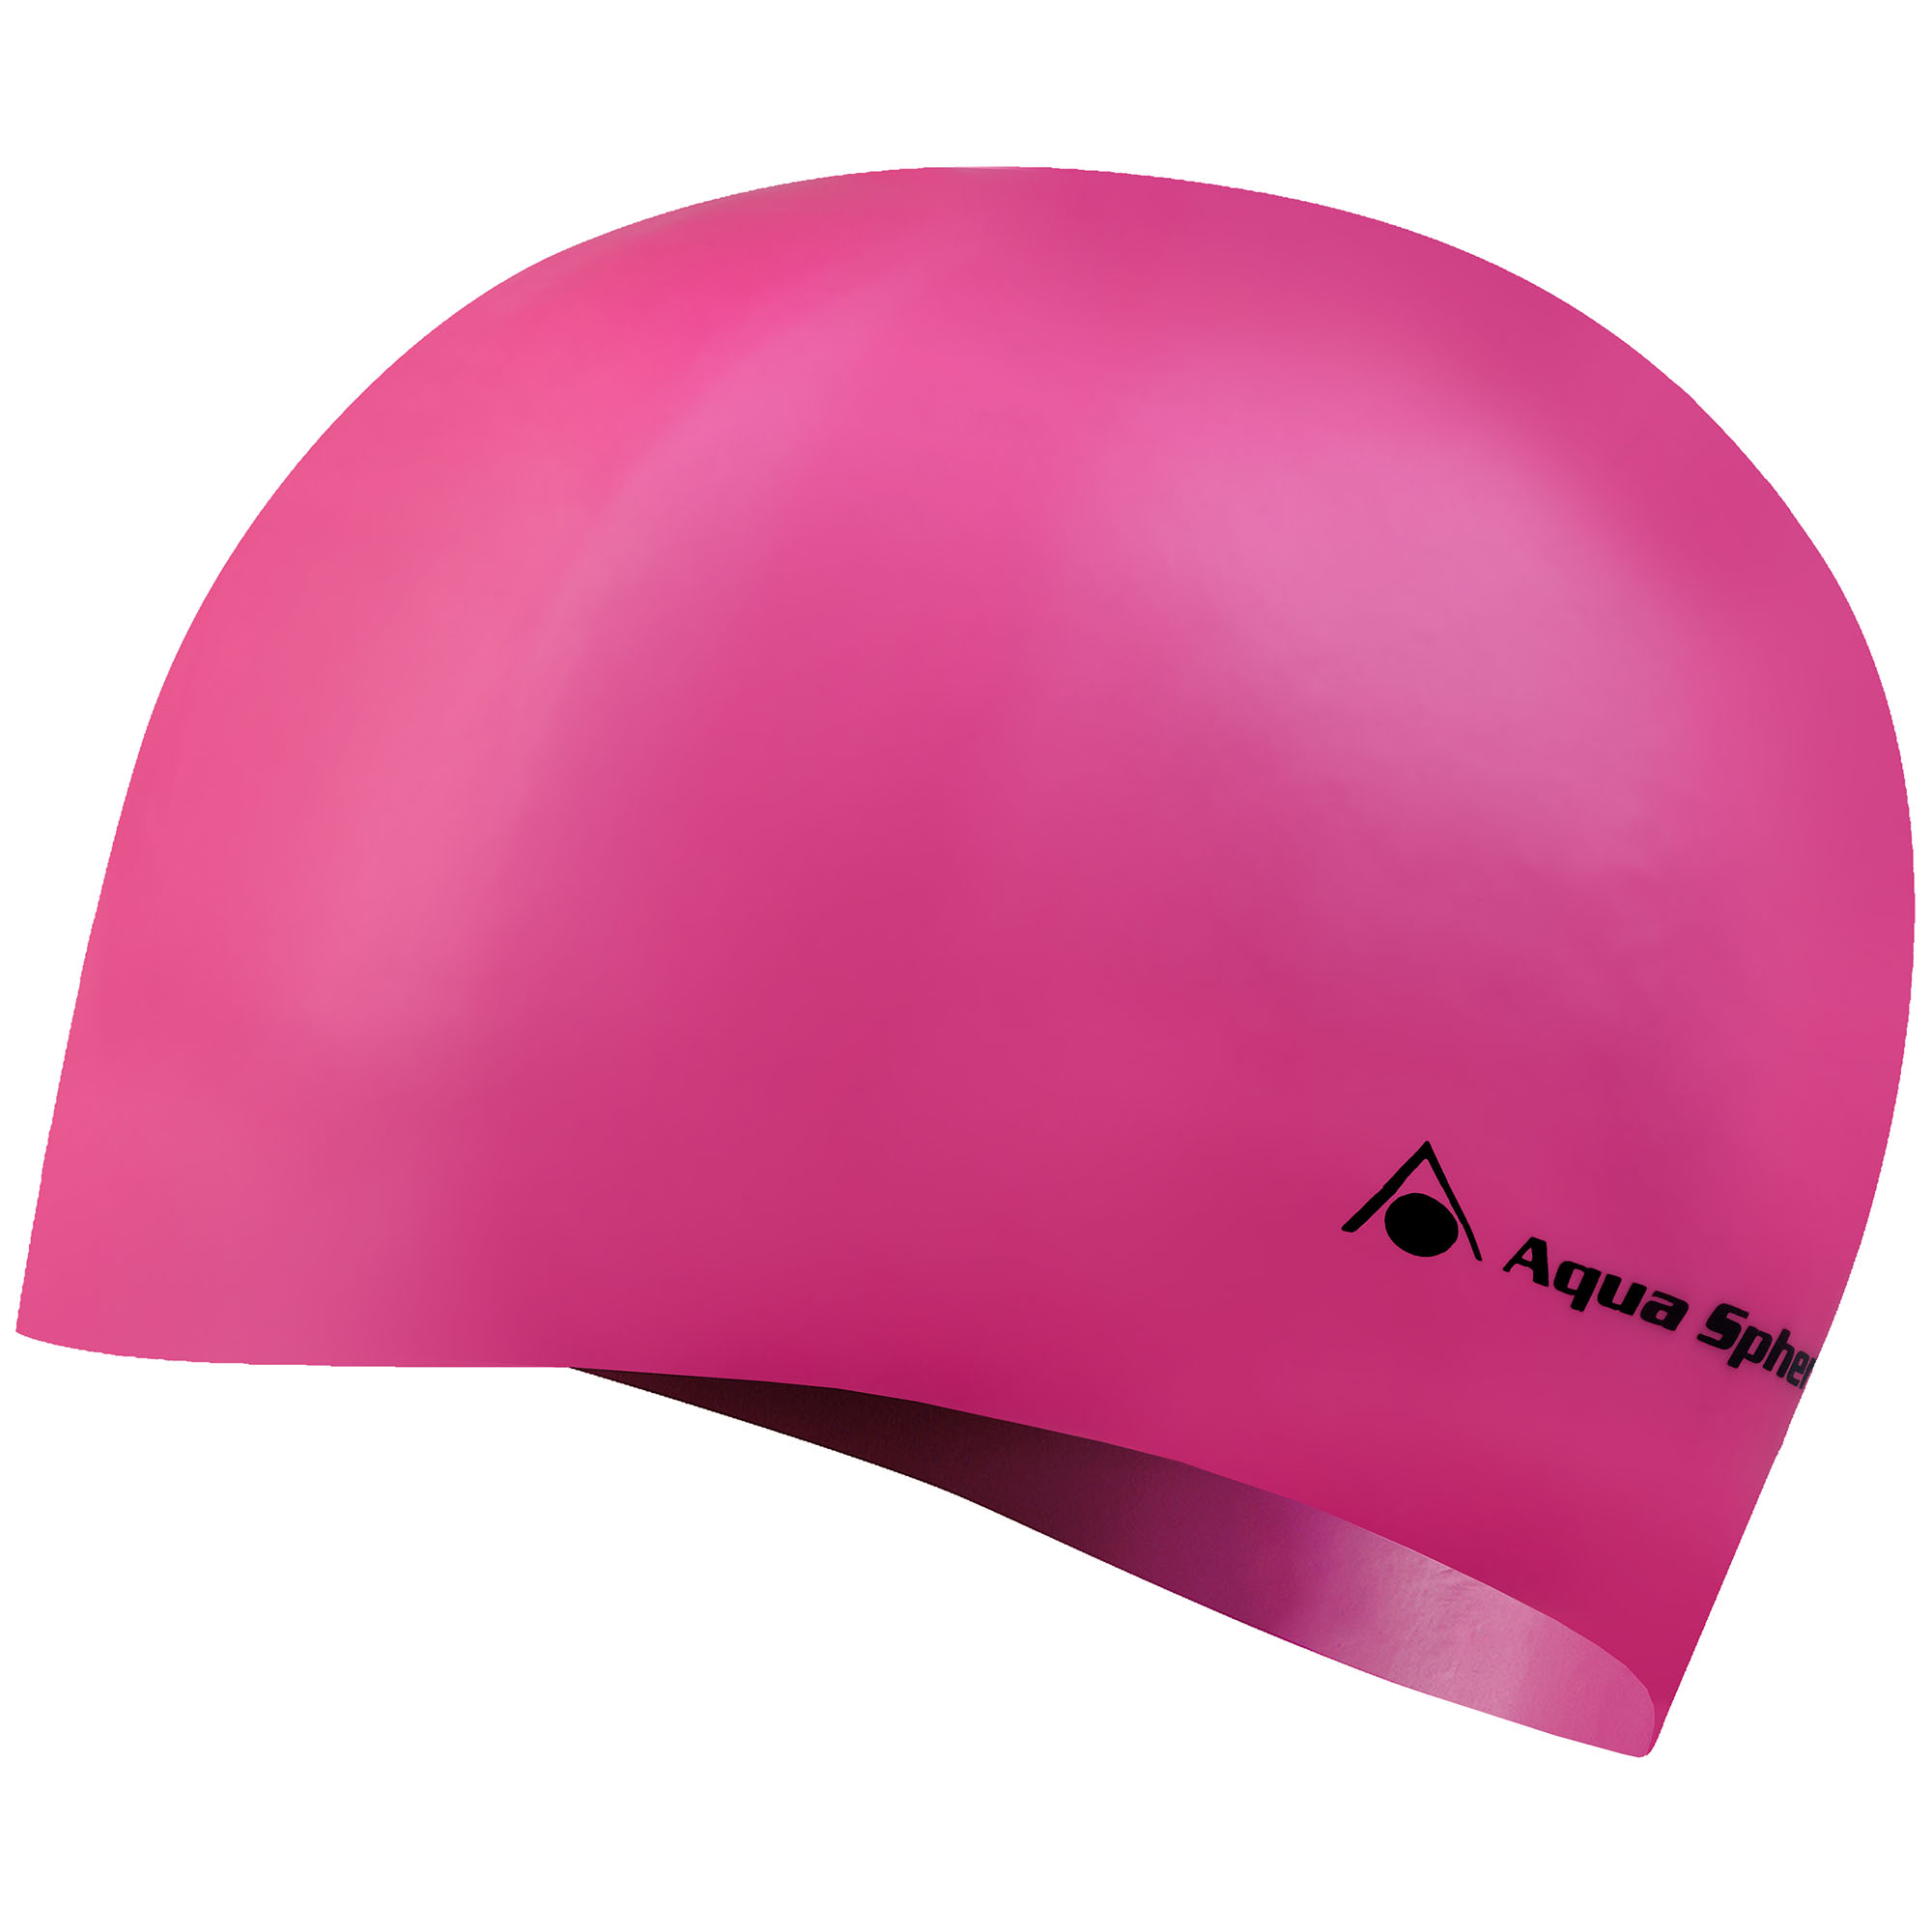 Image of Aqua Sphere Classic Junior Swimming Cap - Pink